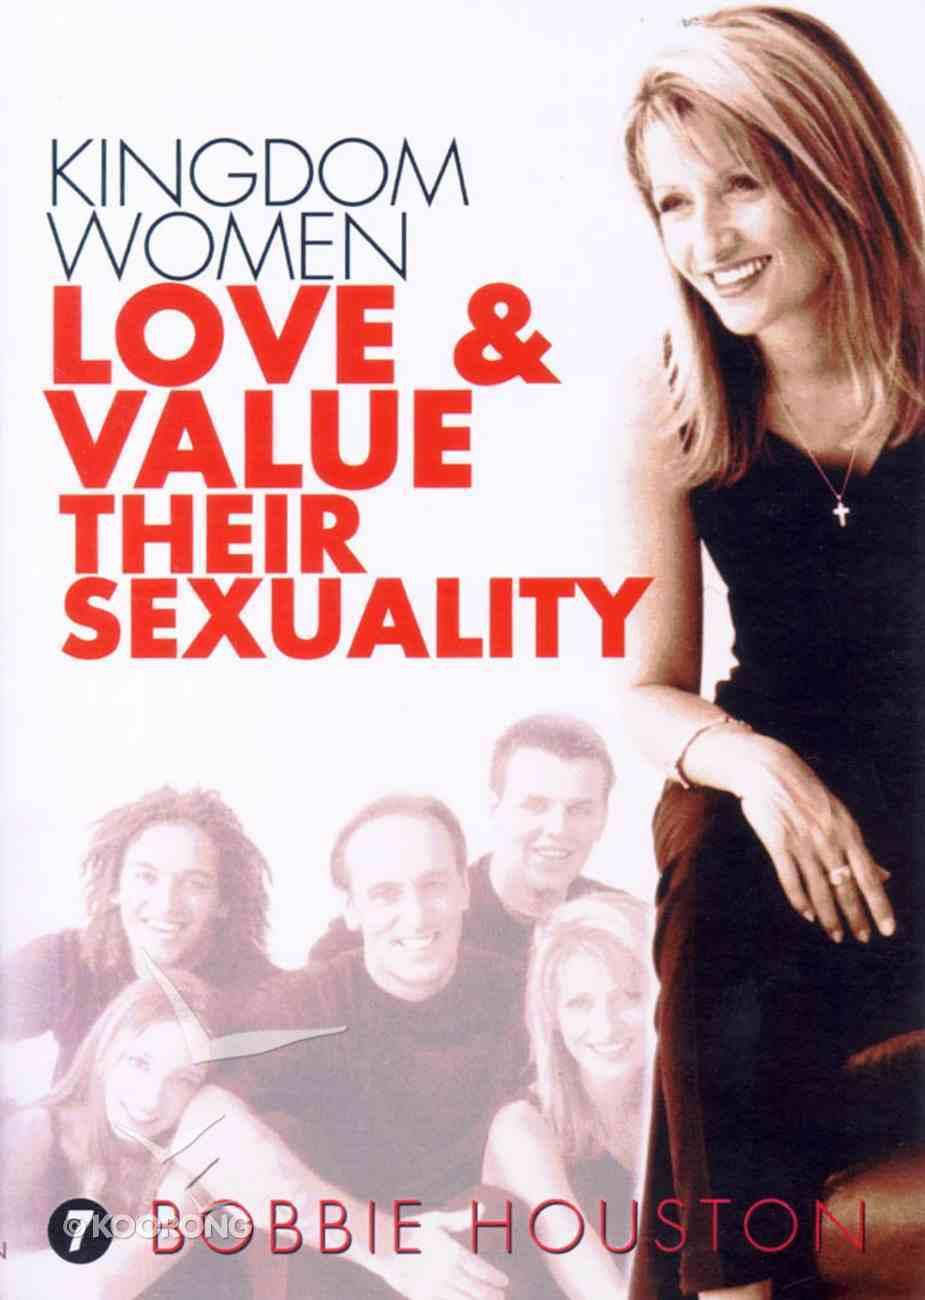 Kingdom Women Love & Value Their Sexuality cover image